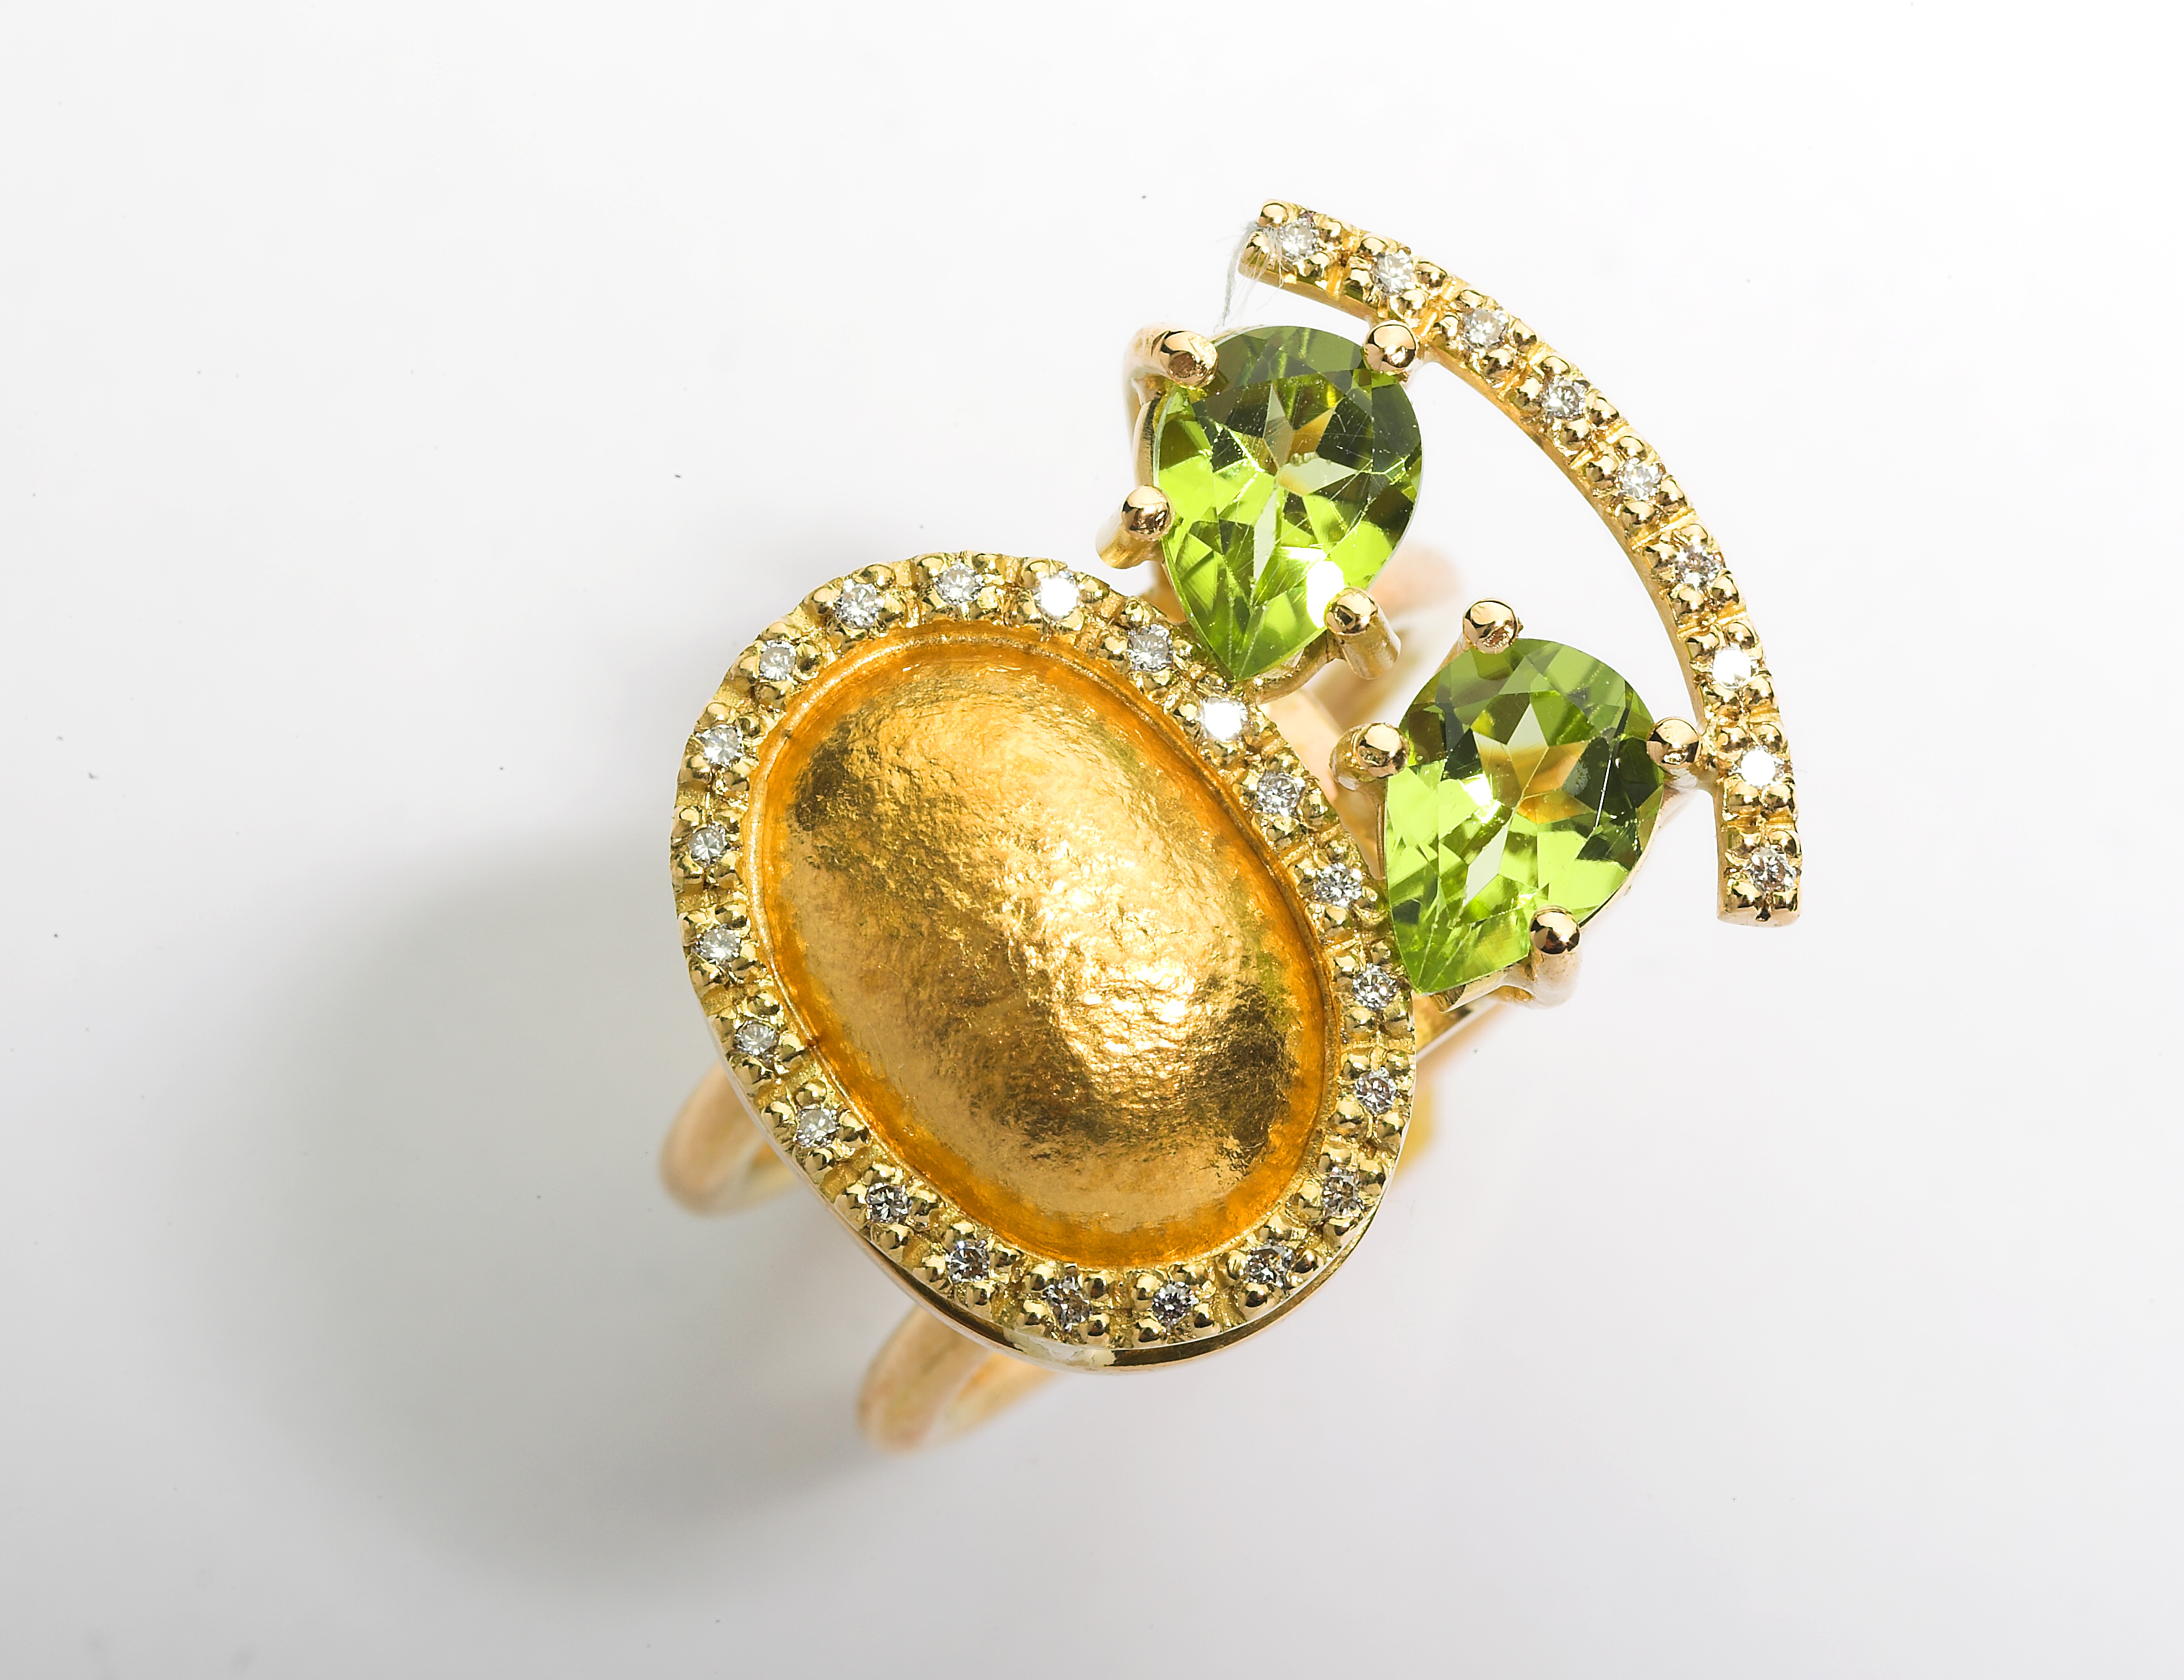 Ring in 24kt & 18kt gold with brilliant diamonds and Peridot